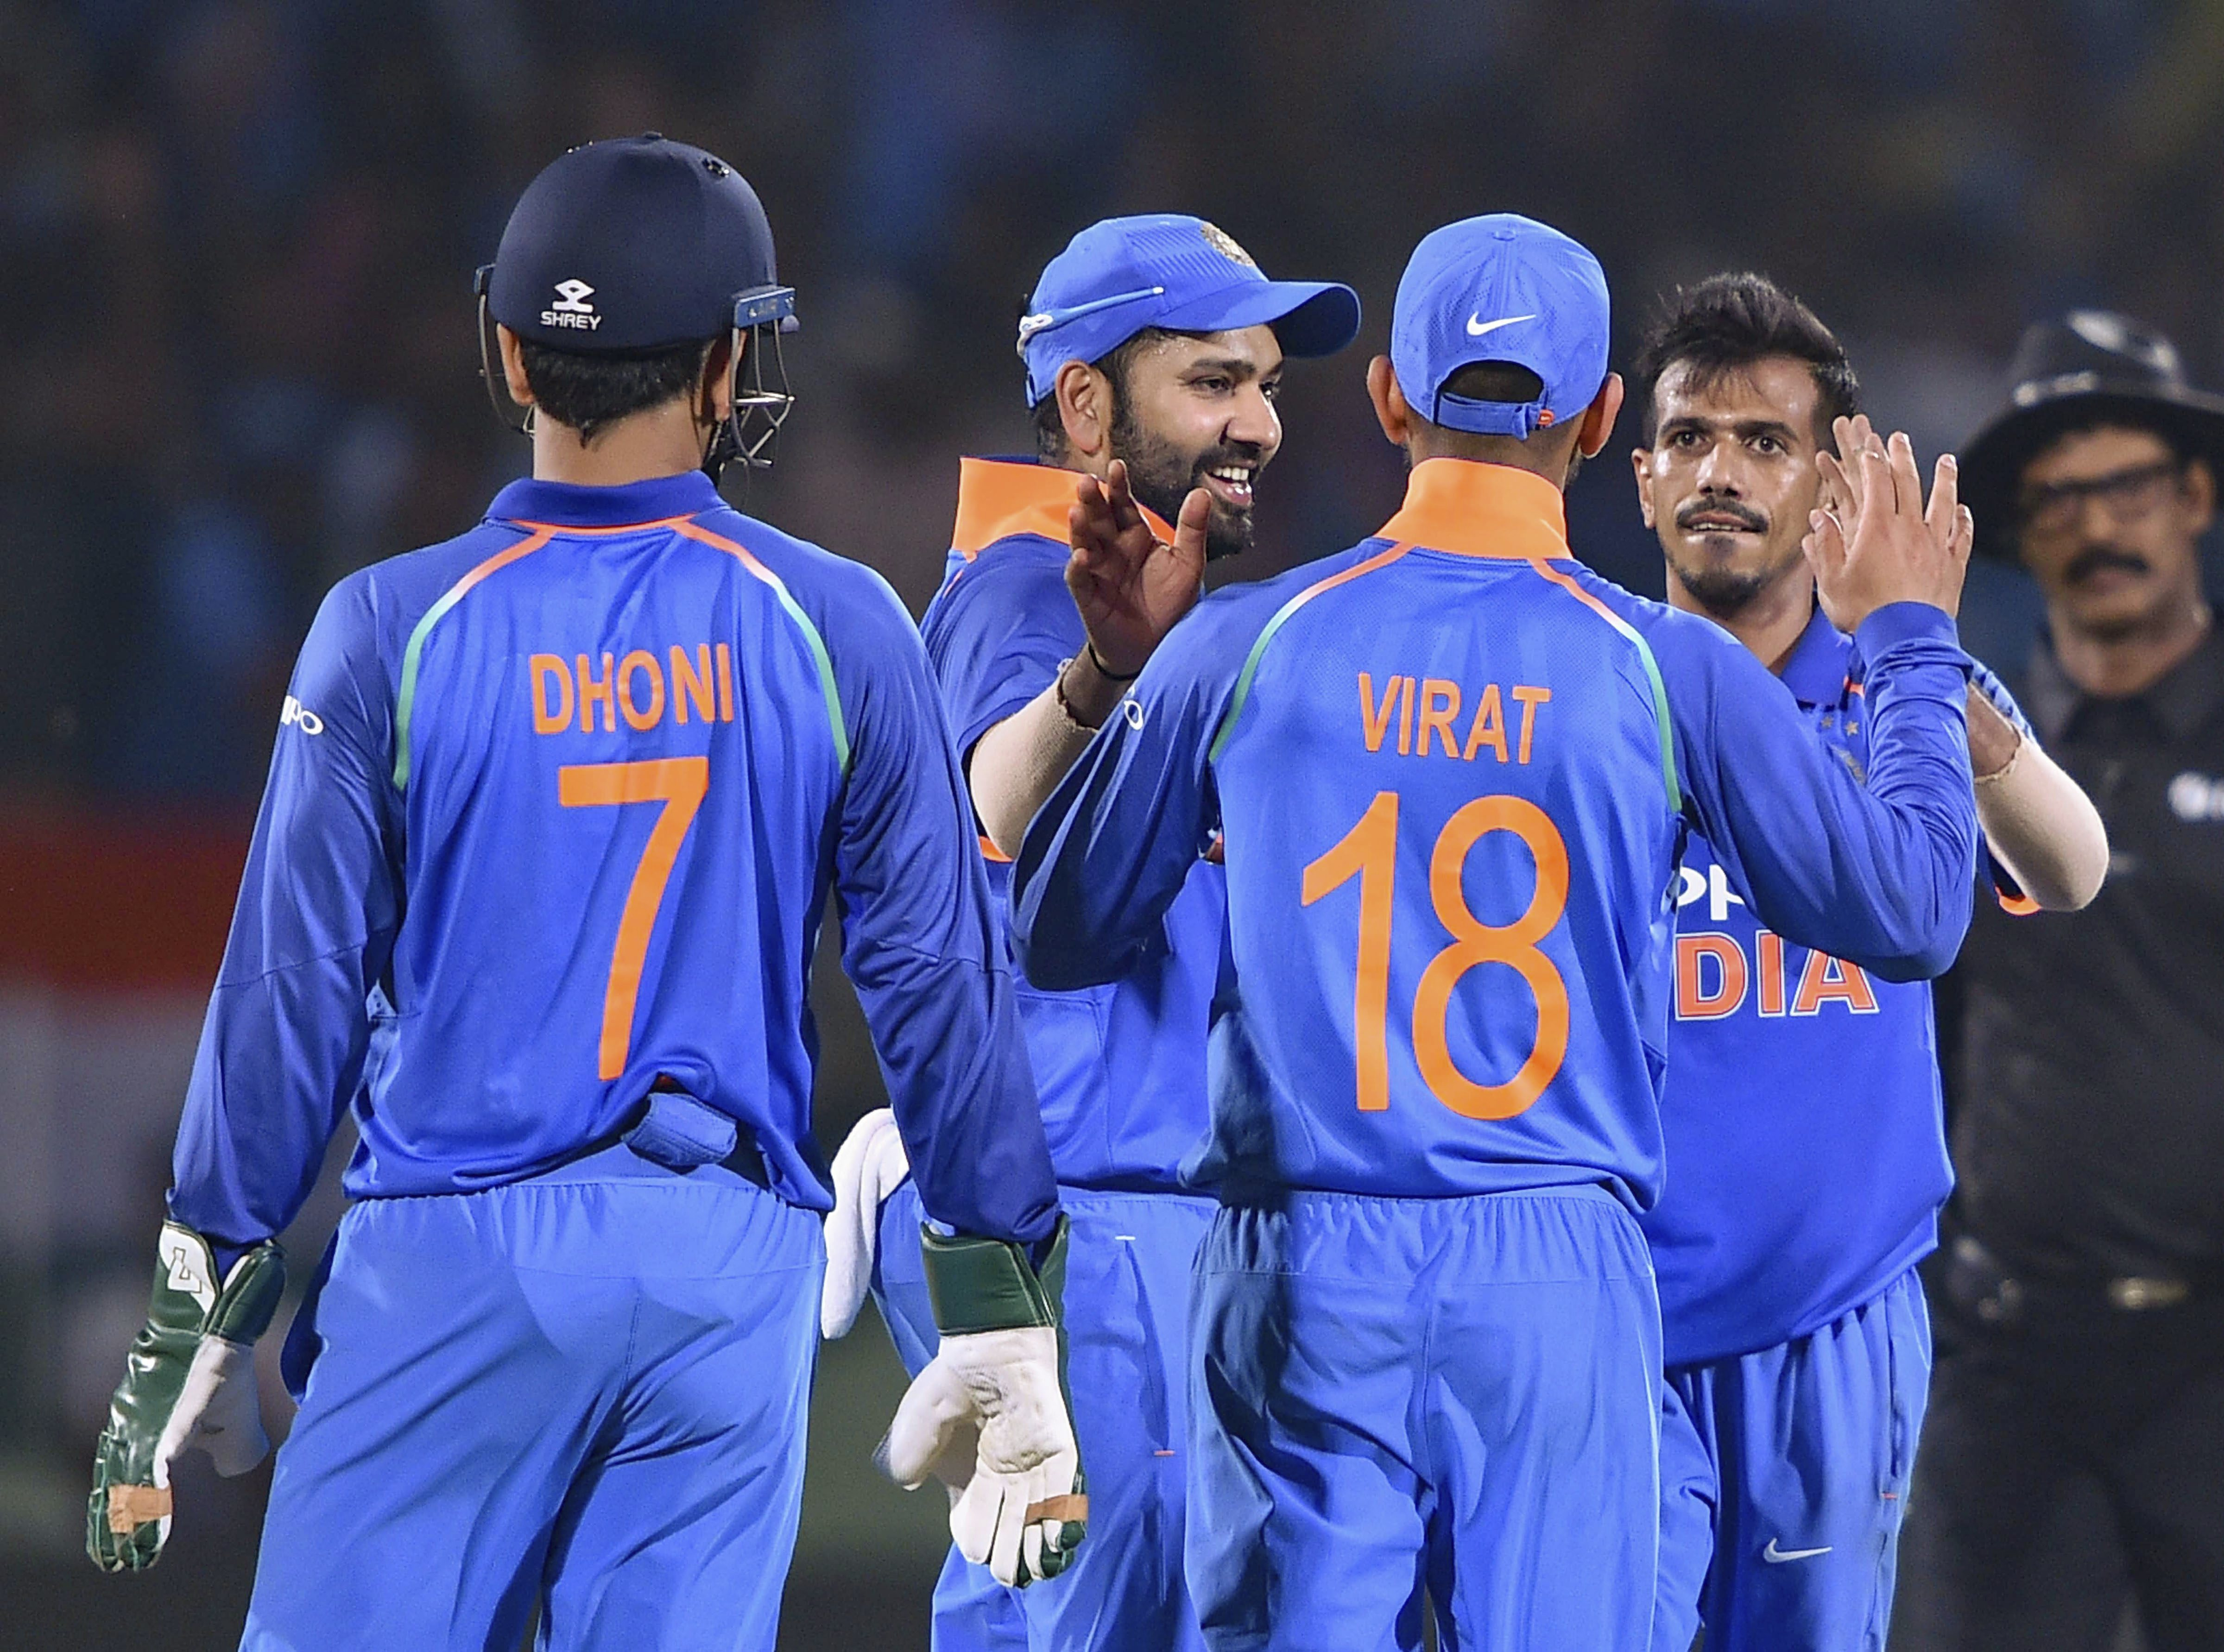 Indian bowler YS Chahal celebrates with teammates after dismissing West Indies batsman SO Hetmyer during the 2nd ODI cricket match in Visakhapatnam - PTI